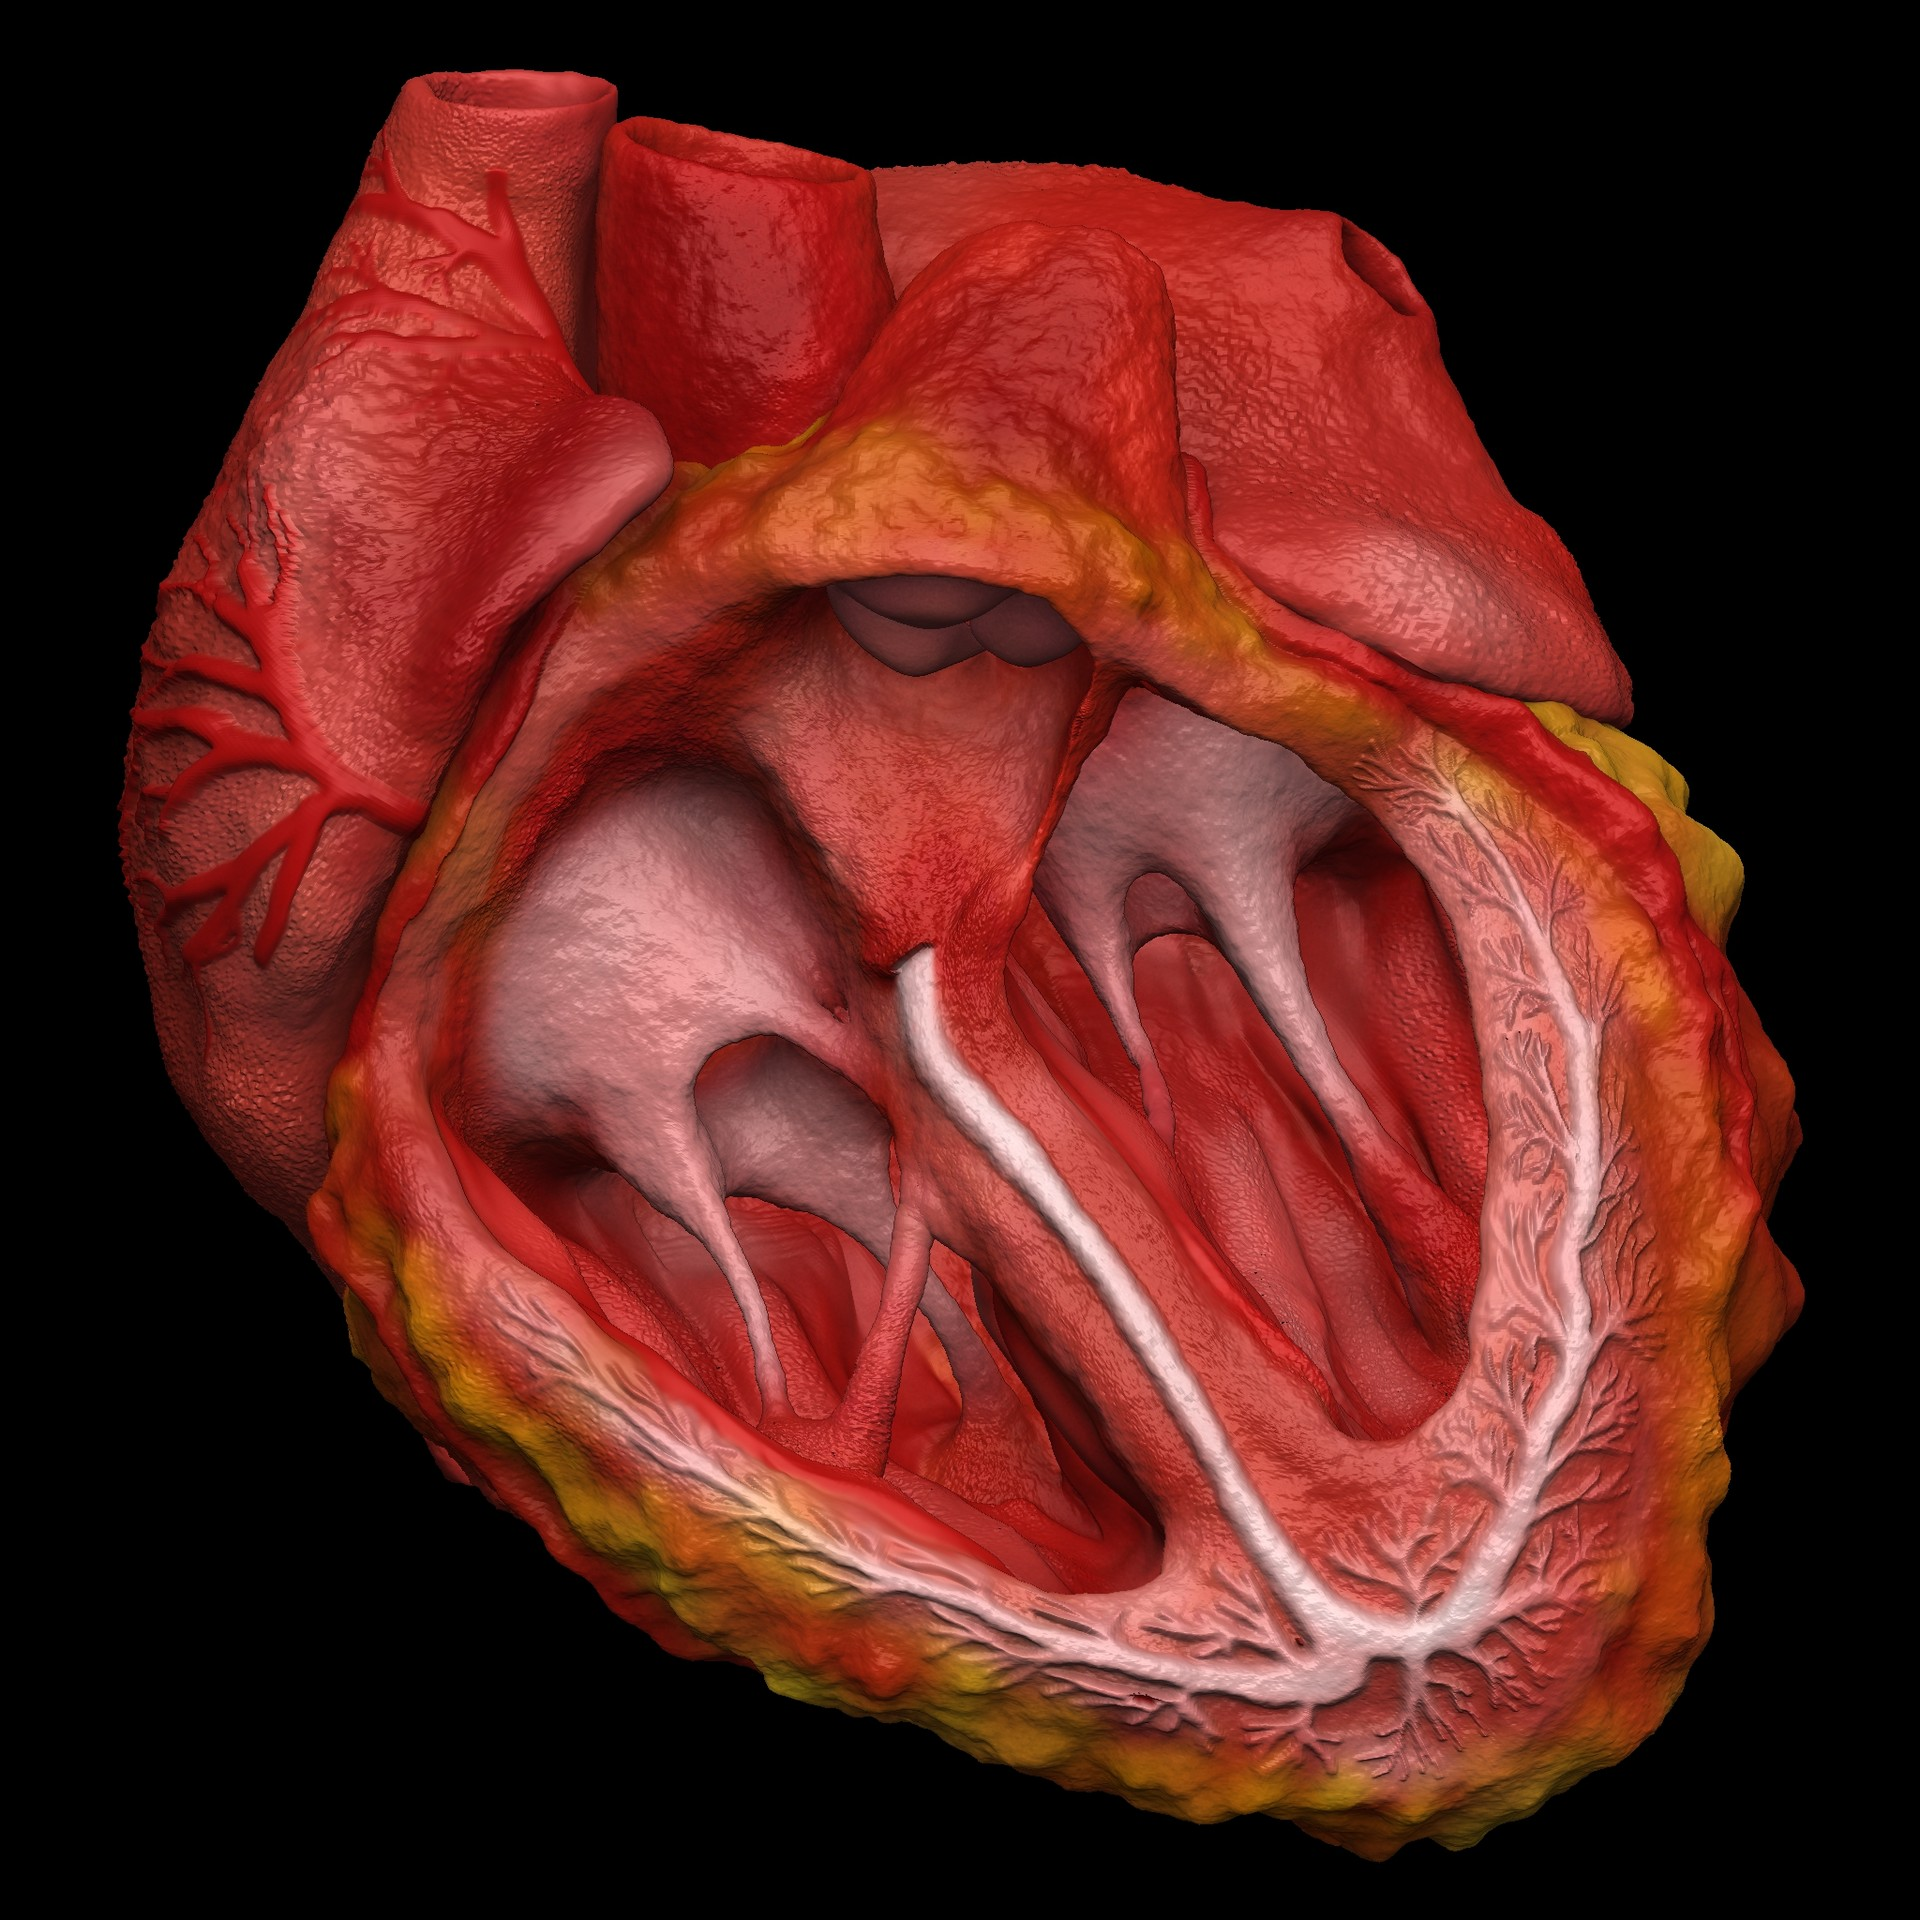 Artstation 3d Animated Realistic Human Heart V2improved Doctor